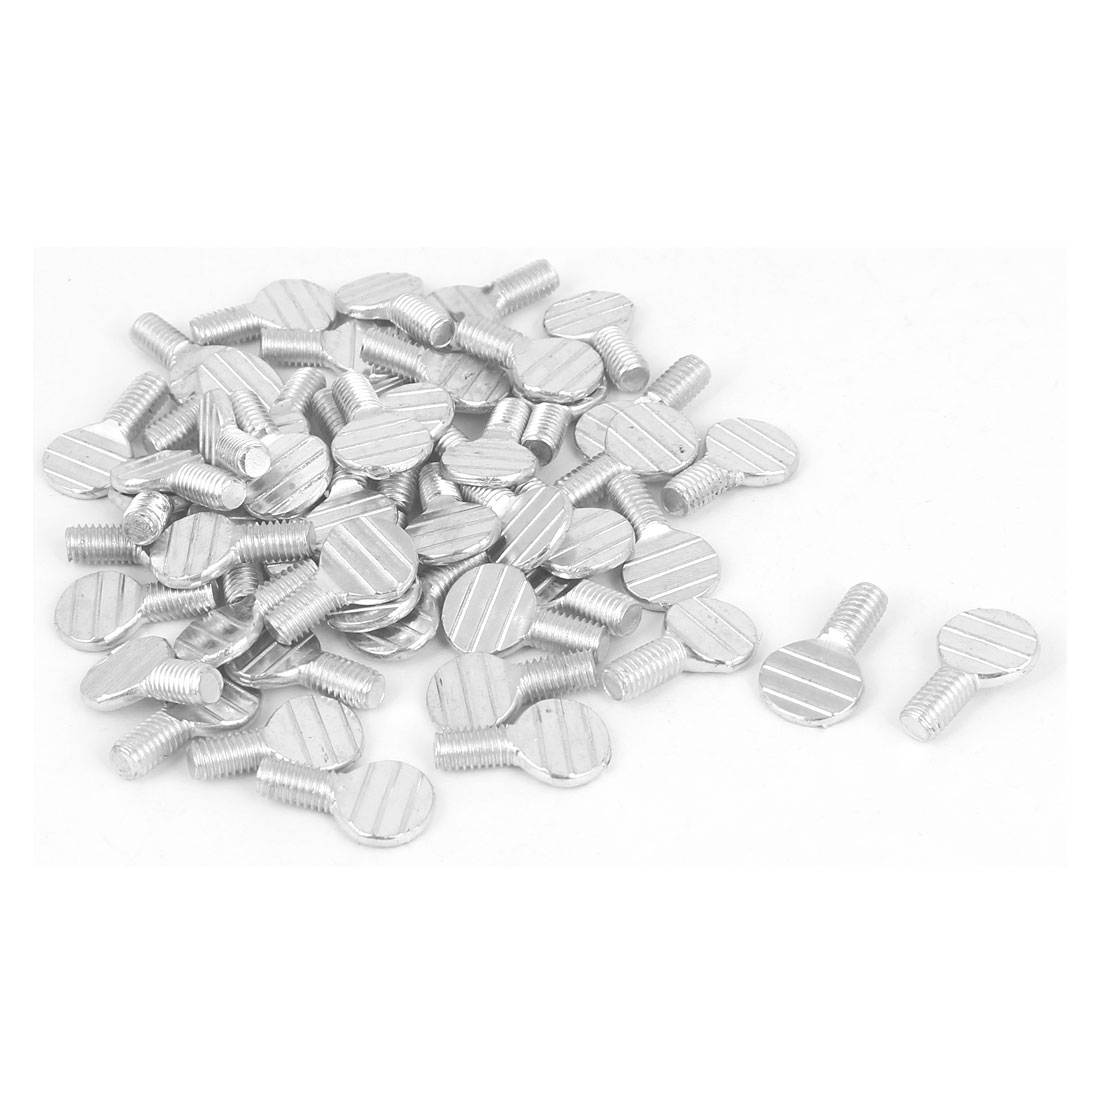 M5 x 10mm Thread Carbon Steel Flat Head Fingertight Thumb Screws 50 Pcs